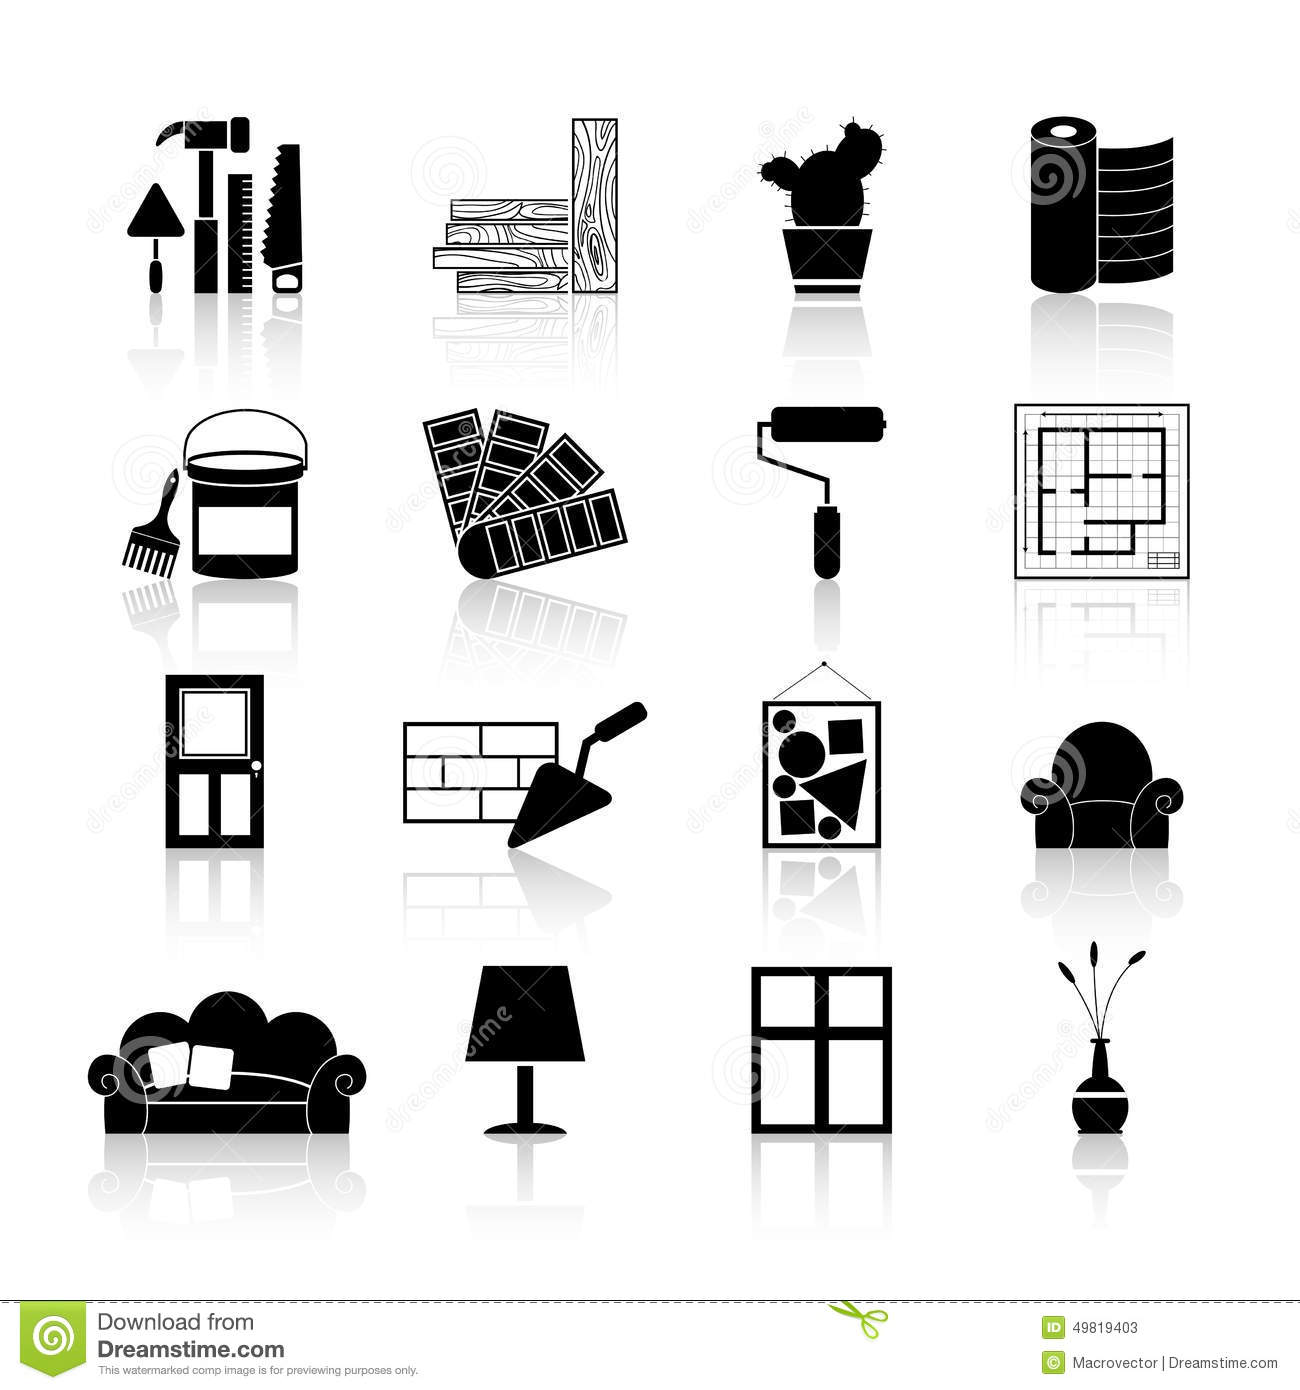 Interior design icons black stock vector image 49819403 for Interior design images vector